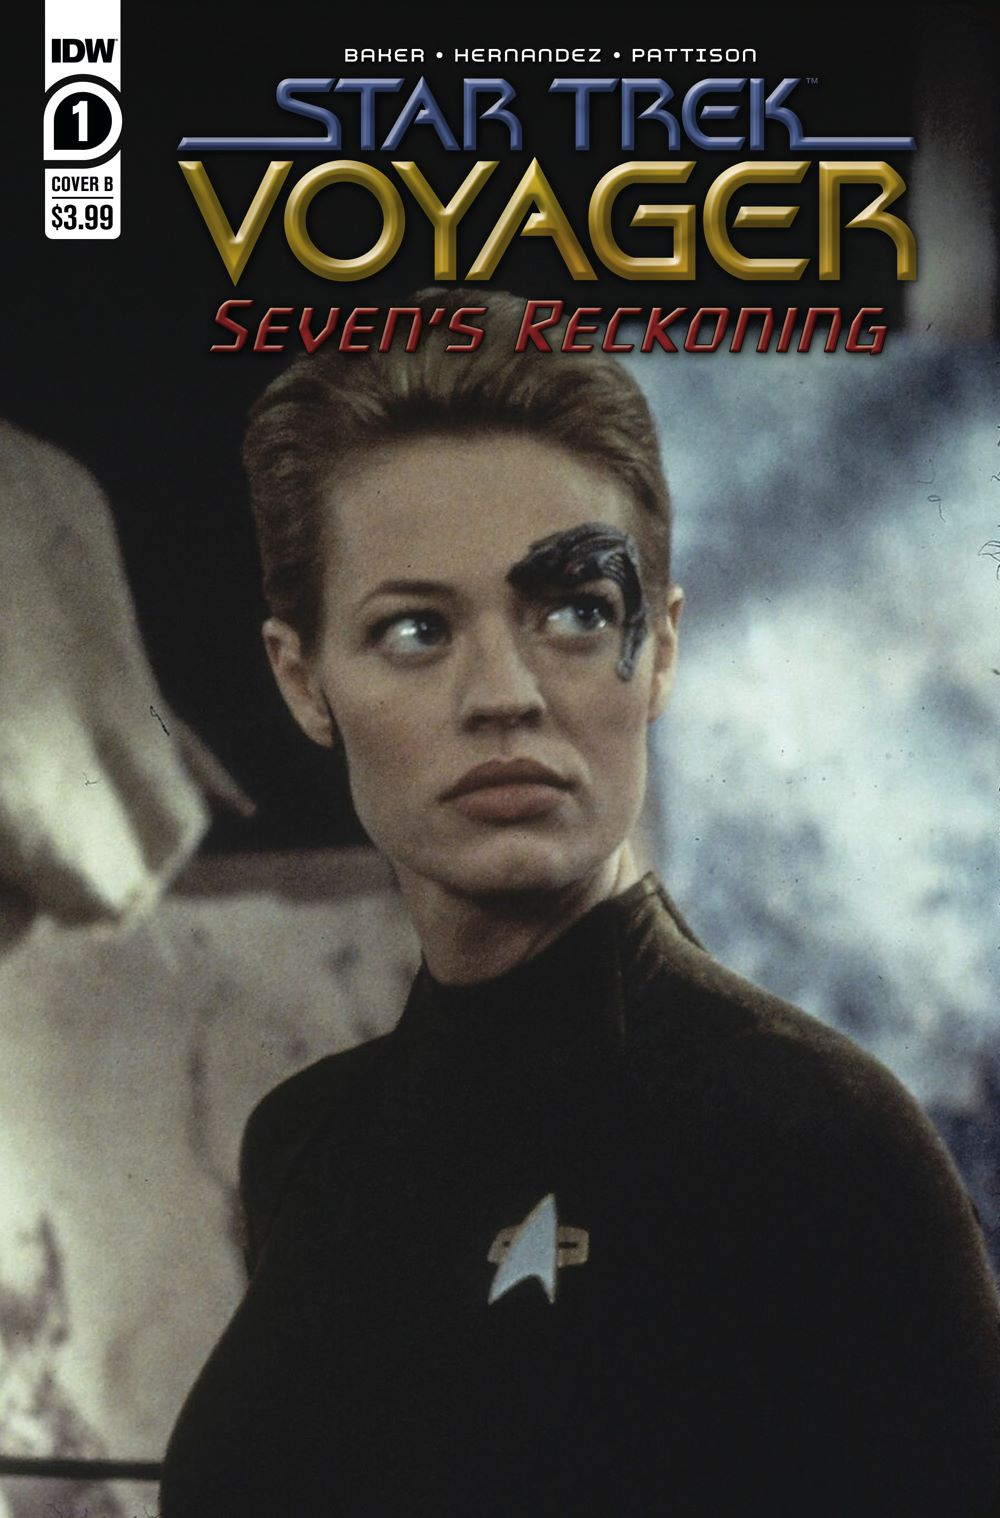 ST_Voyager_SR01-coverB ComicList Previews: STAR TREK VOYAGER SEVEN'S RECKONING #1 (OF 4)